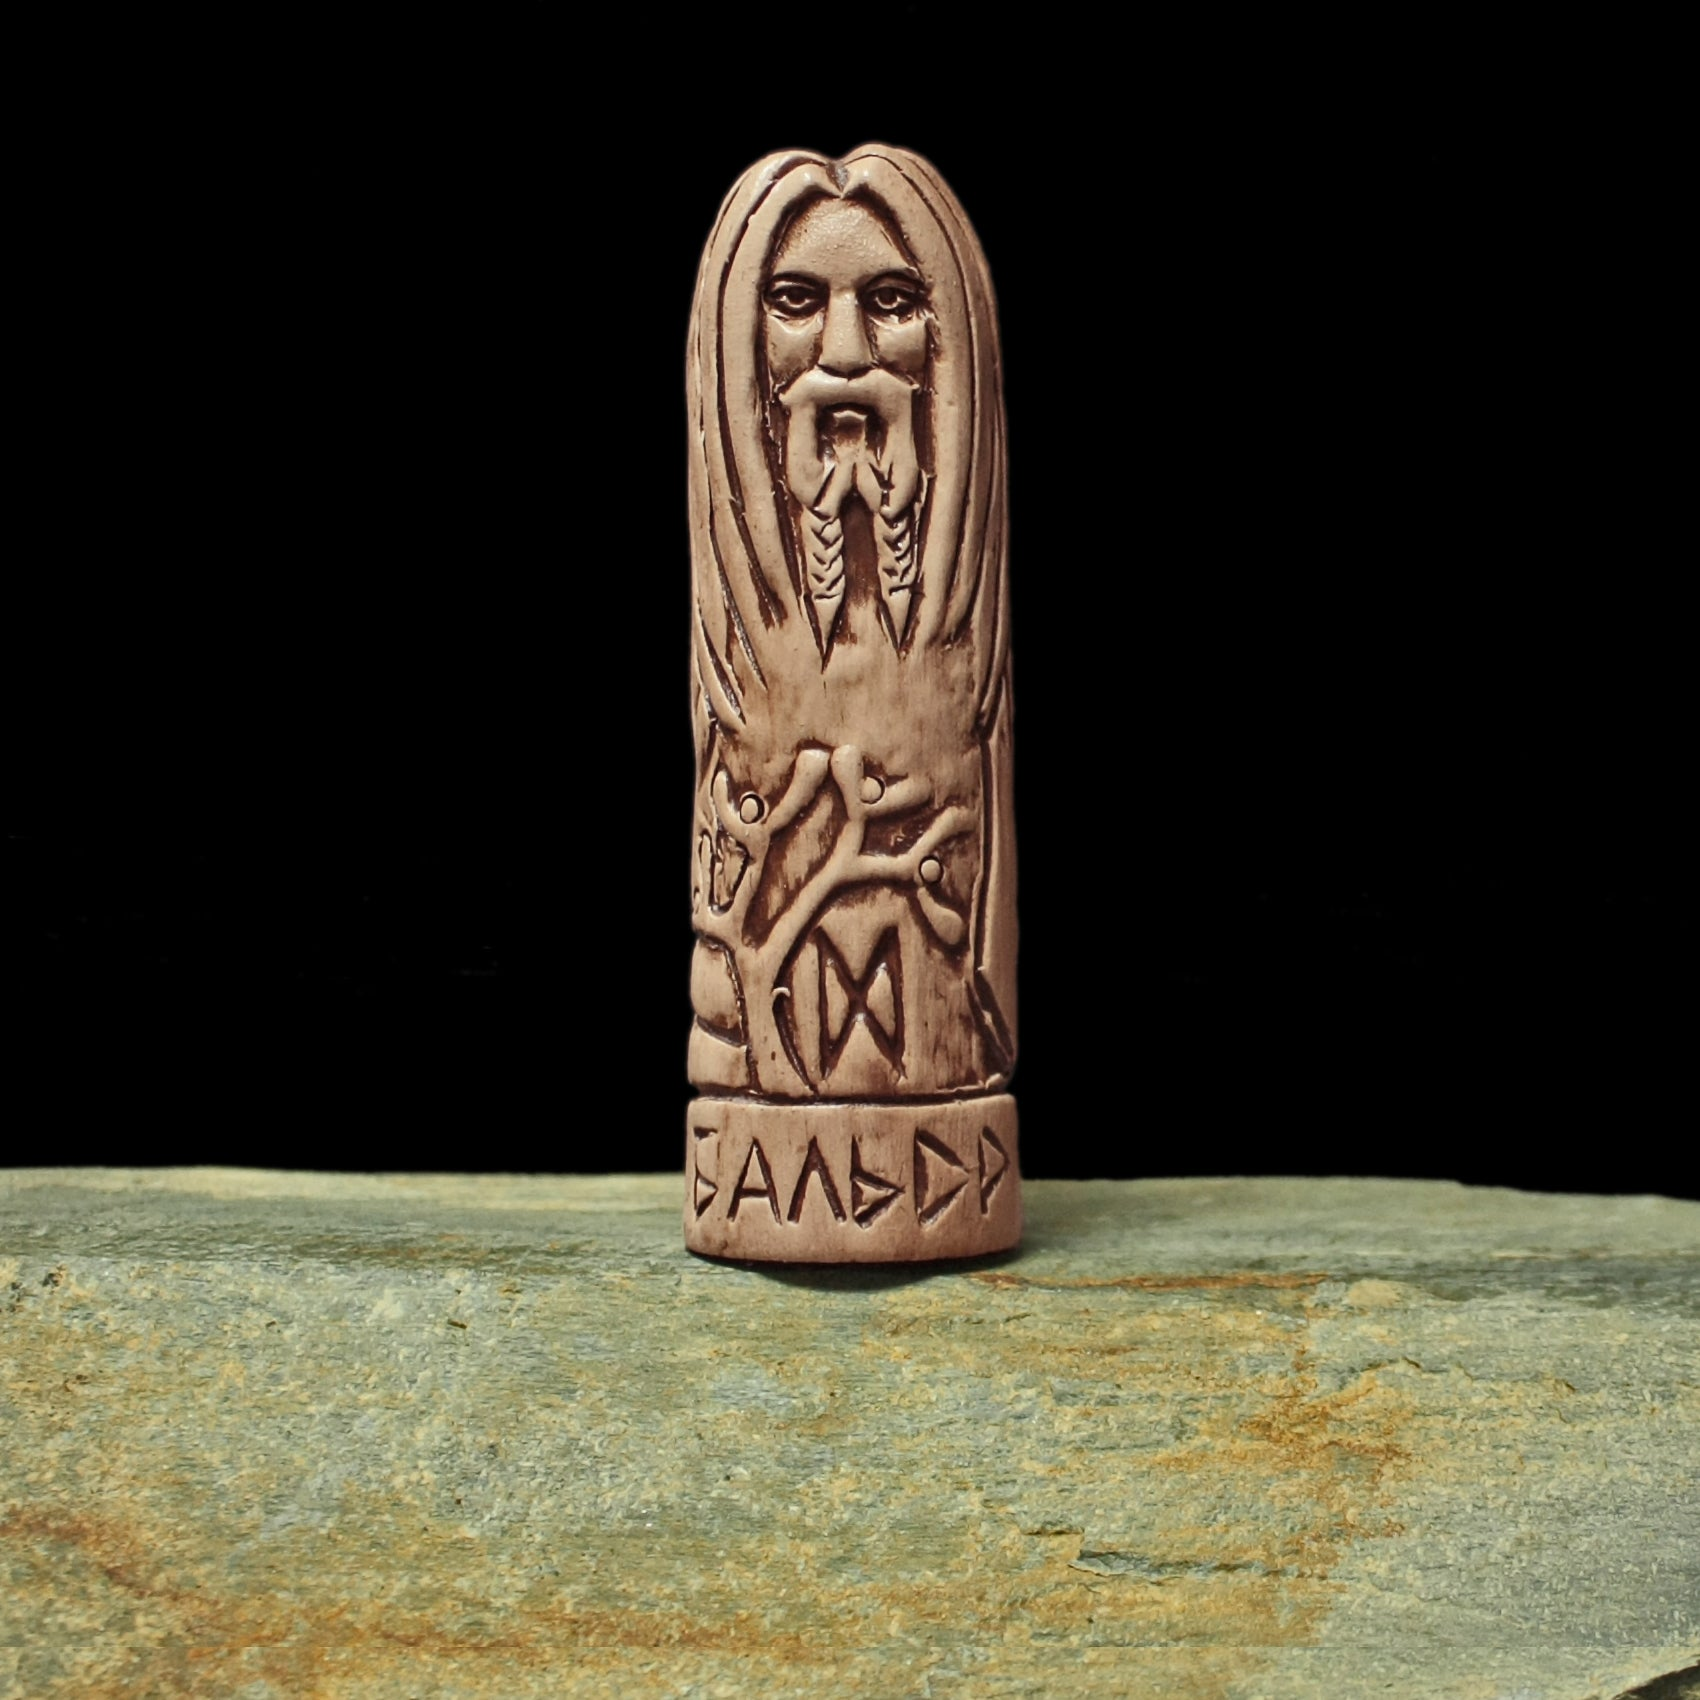 Hand-Crafted Ceramic Baldr Statuette